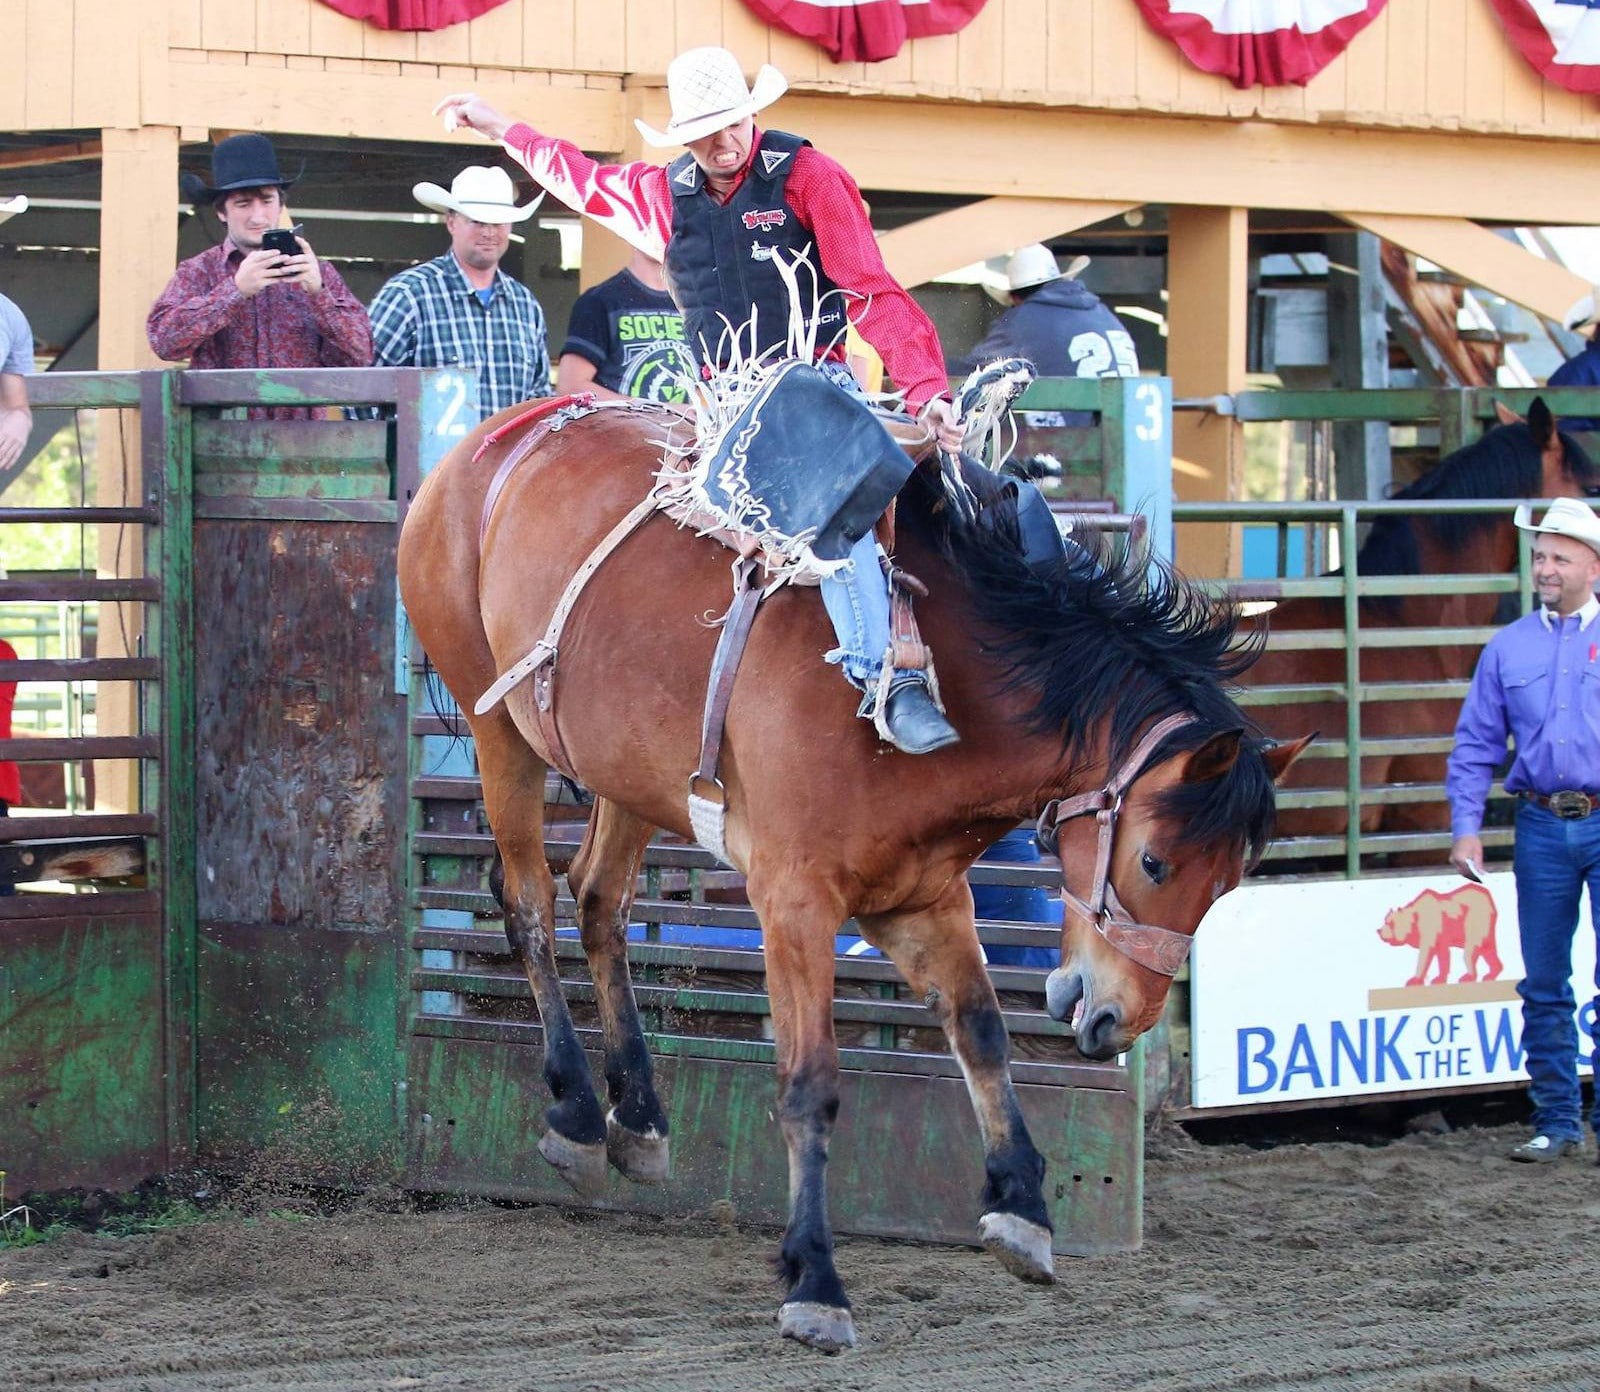 Image of a man riding a bucking horse at High Country Stampede Rodeo in Fraser, Colorado